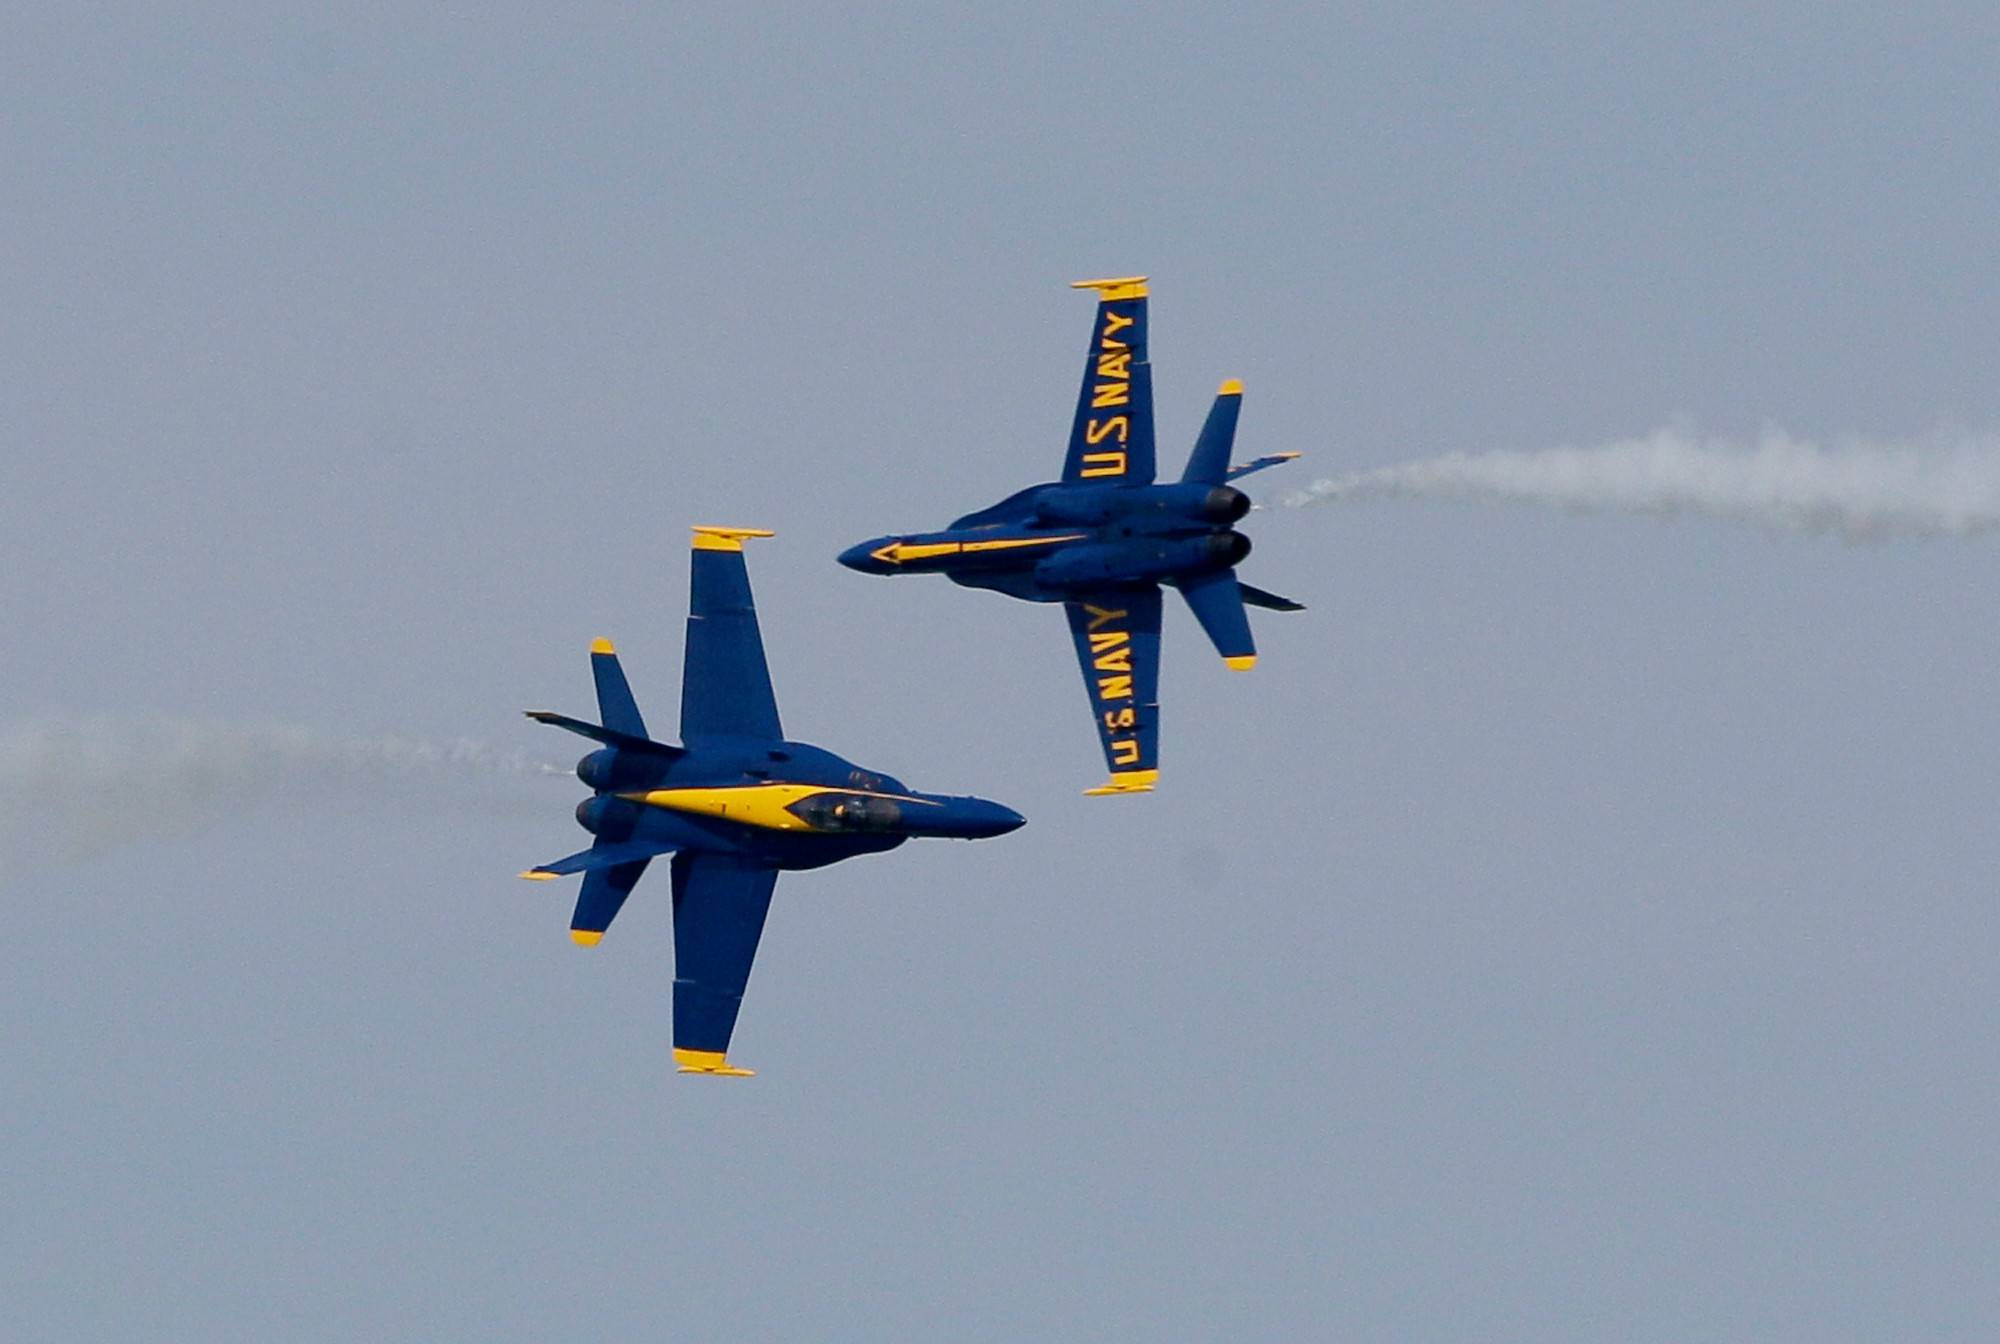 The U.S. Navy Blue Angels return to the Chicago Air and Water Show. The popular military act was not on the bill last year because of the government sequester.